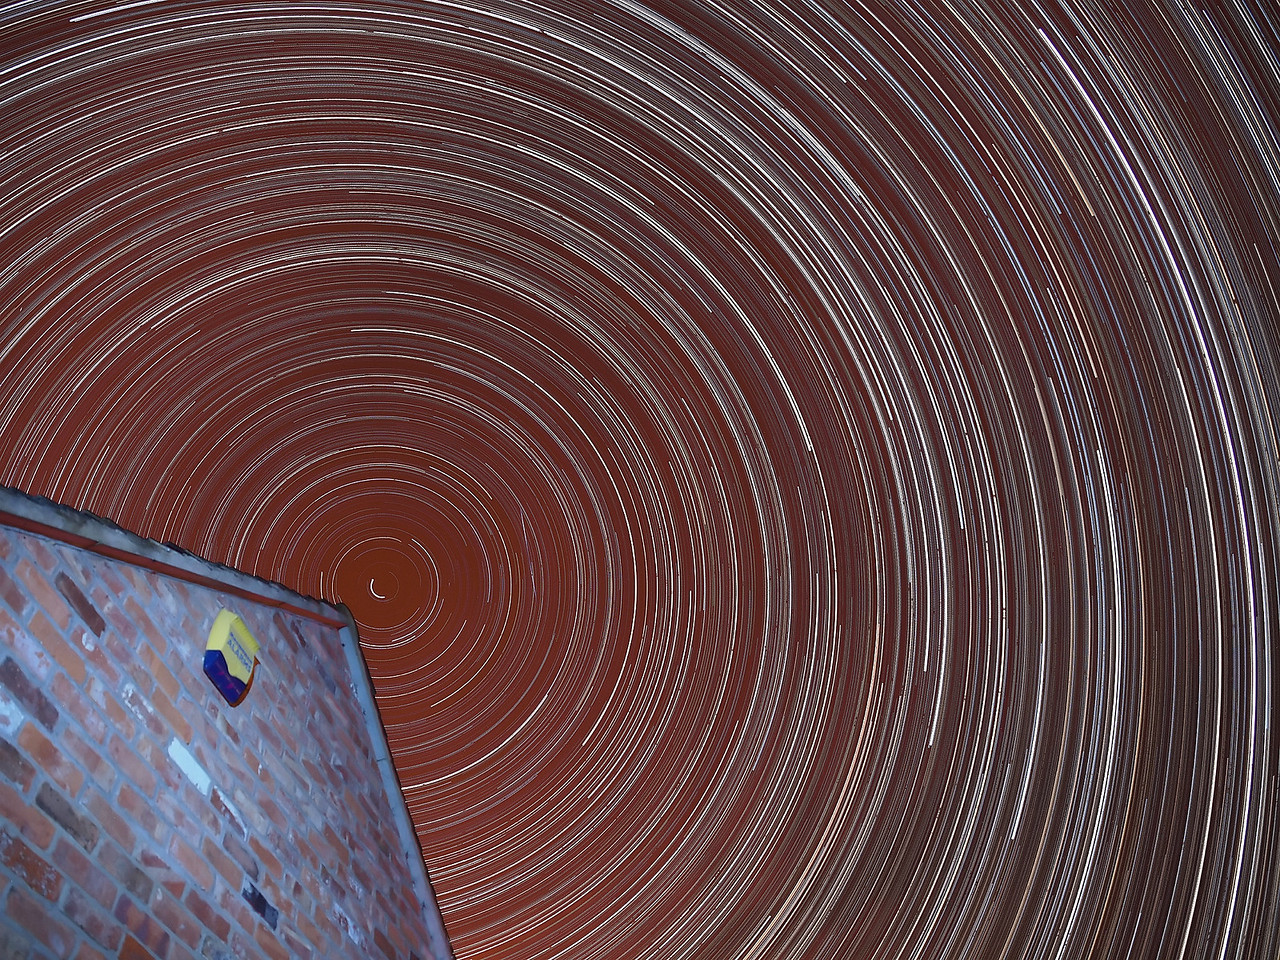 18/19th Feb 2012. Mesmerising startrail from a very clear night in sth Leics. Targeting the celestial north pole star (polaris) via an apex from a building and using a 12mm focal length (12-6mm SWD) resulted in this wonderful spinner. Over 9hrs of earths rotation shown visibly through the stars spinning. Captured with Olympus E5 15s exposures shot continuous all night and kept from freezing over with dew/heat shield. Over 2000 images imported to StarStax which produced this final composite. Mesmerising :-)